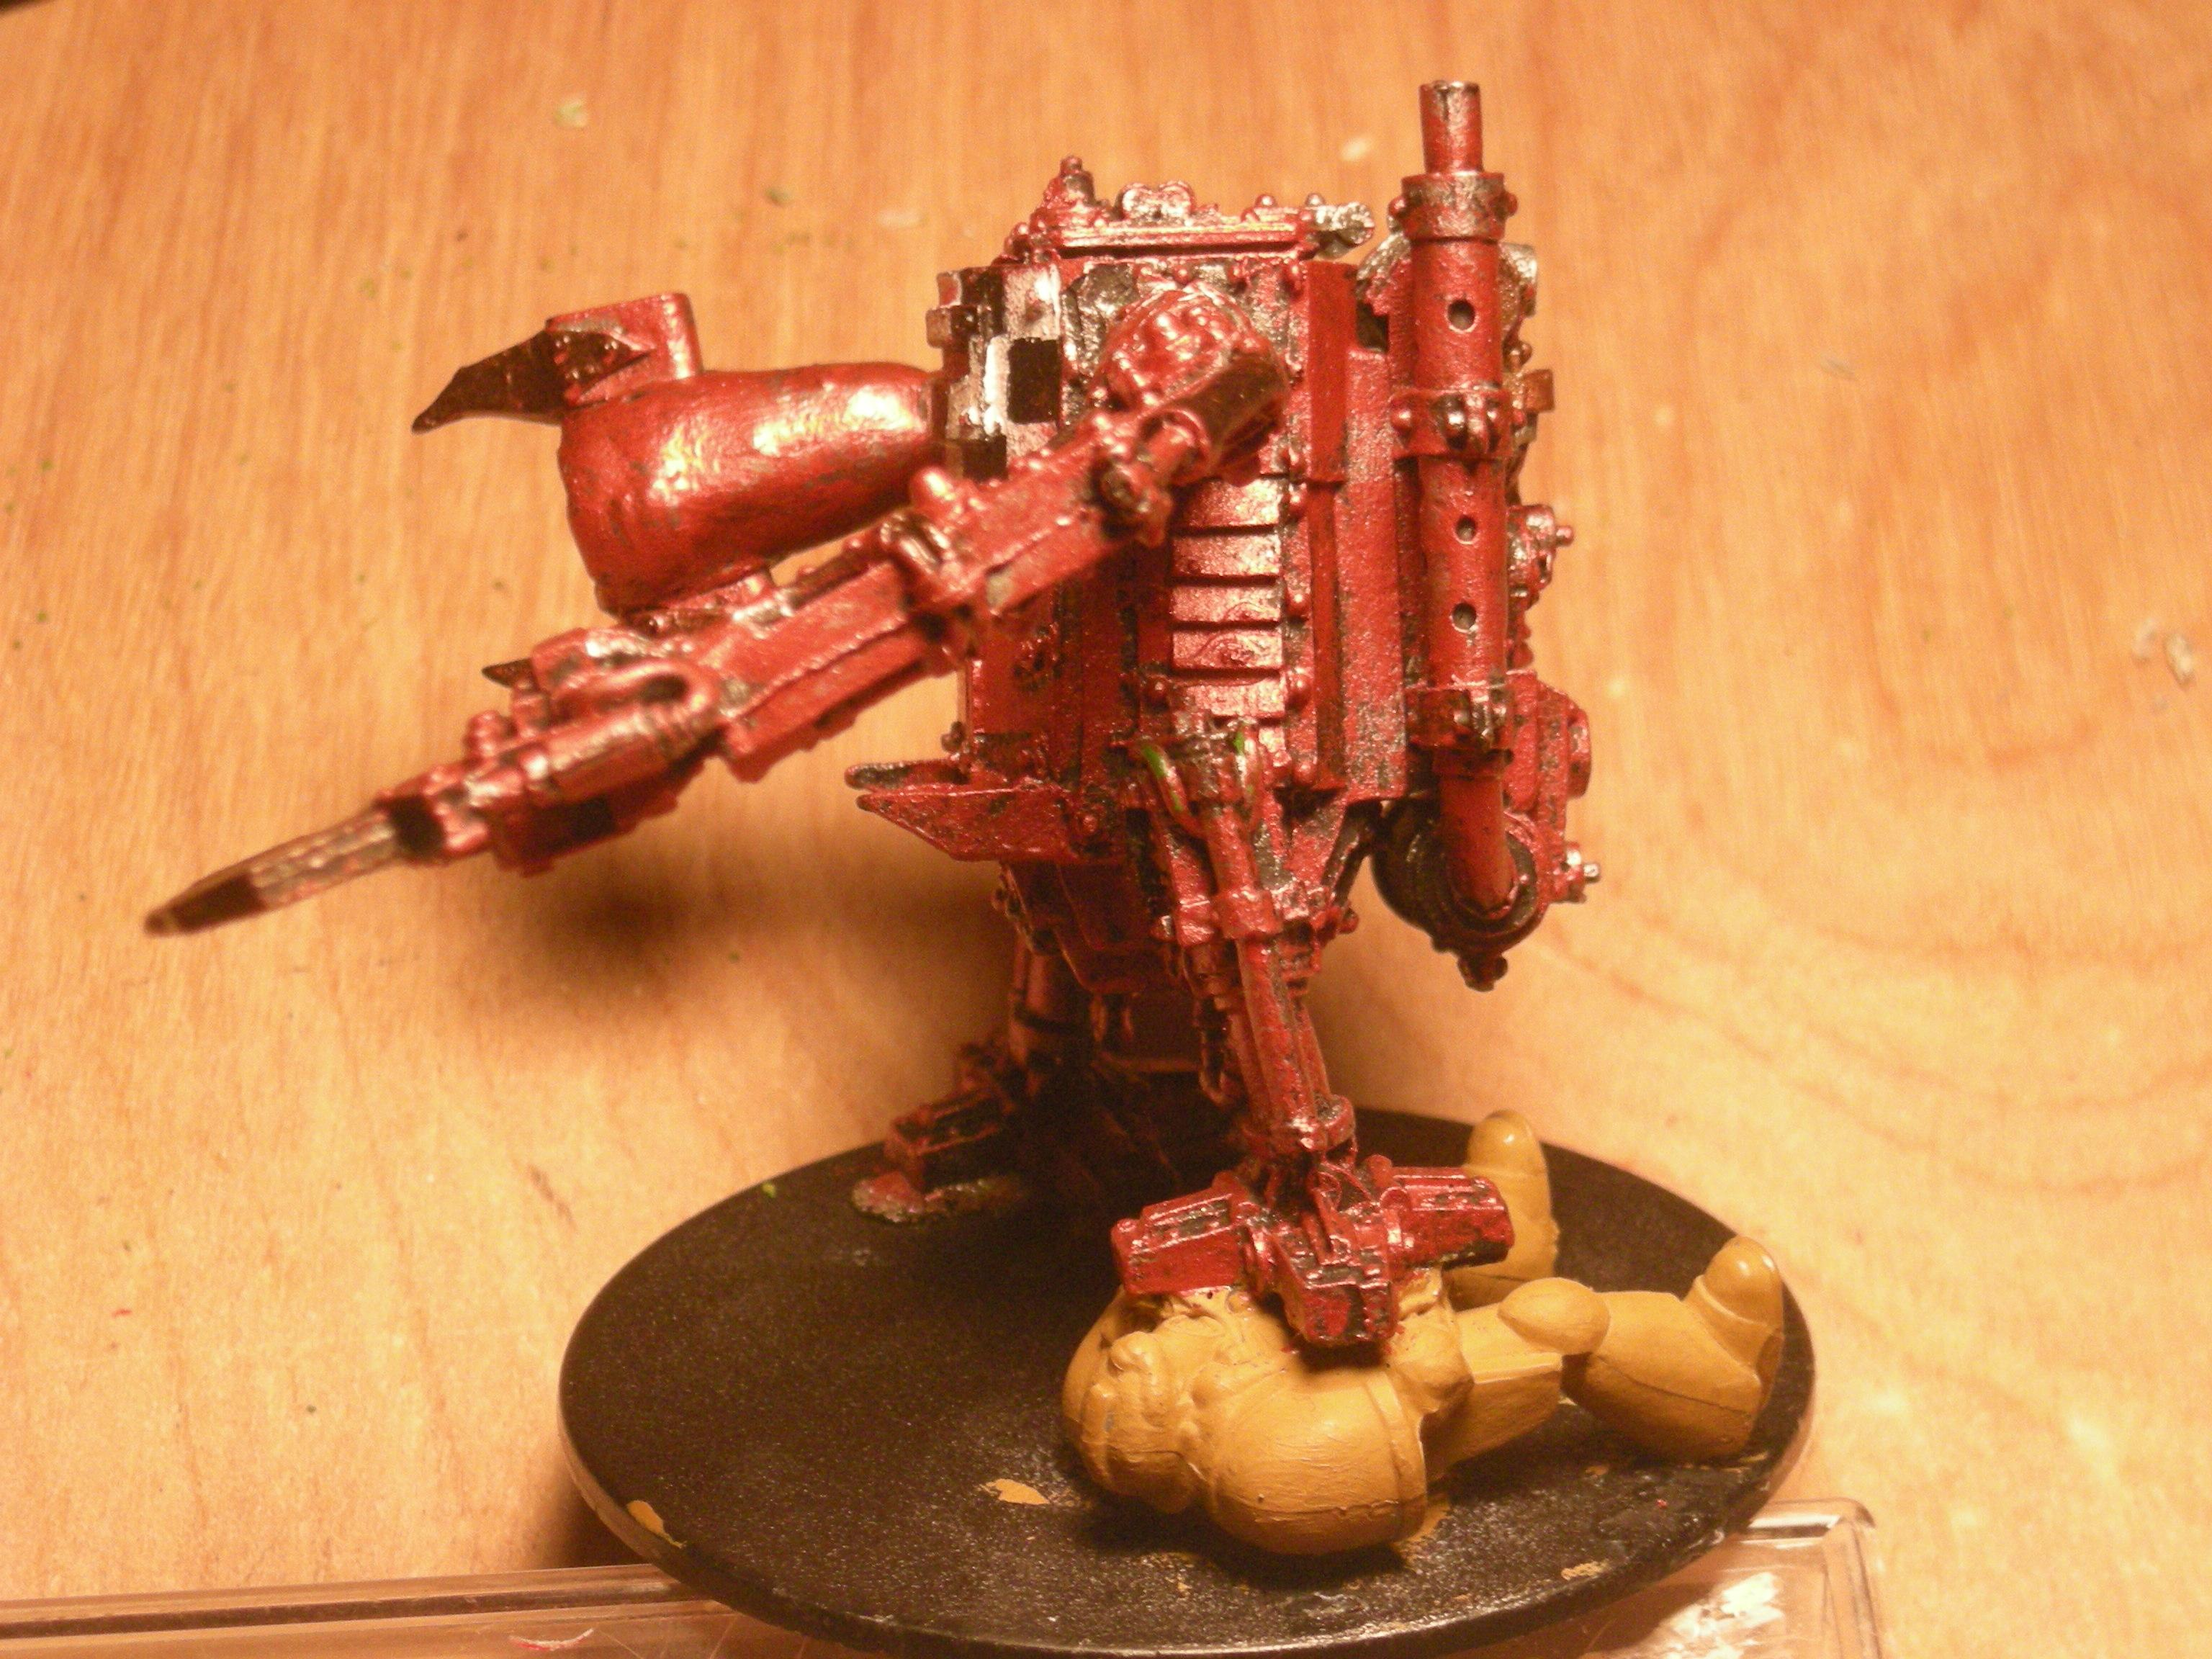 A side view of squished marine